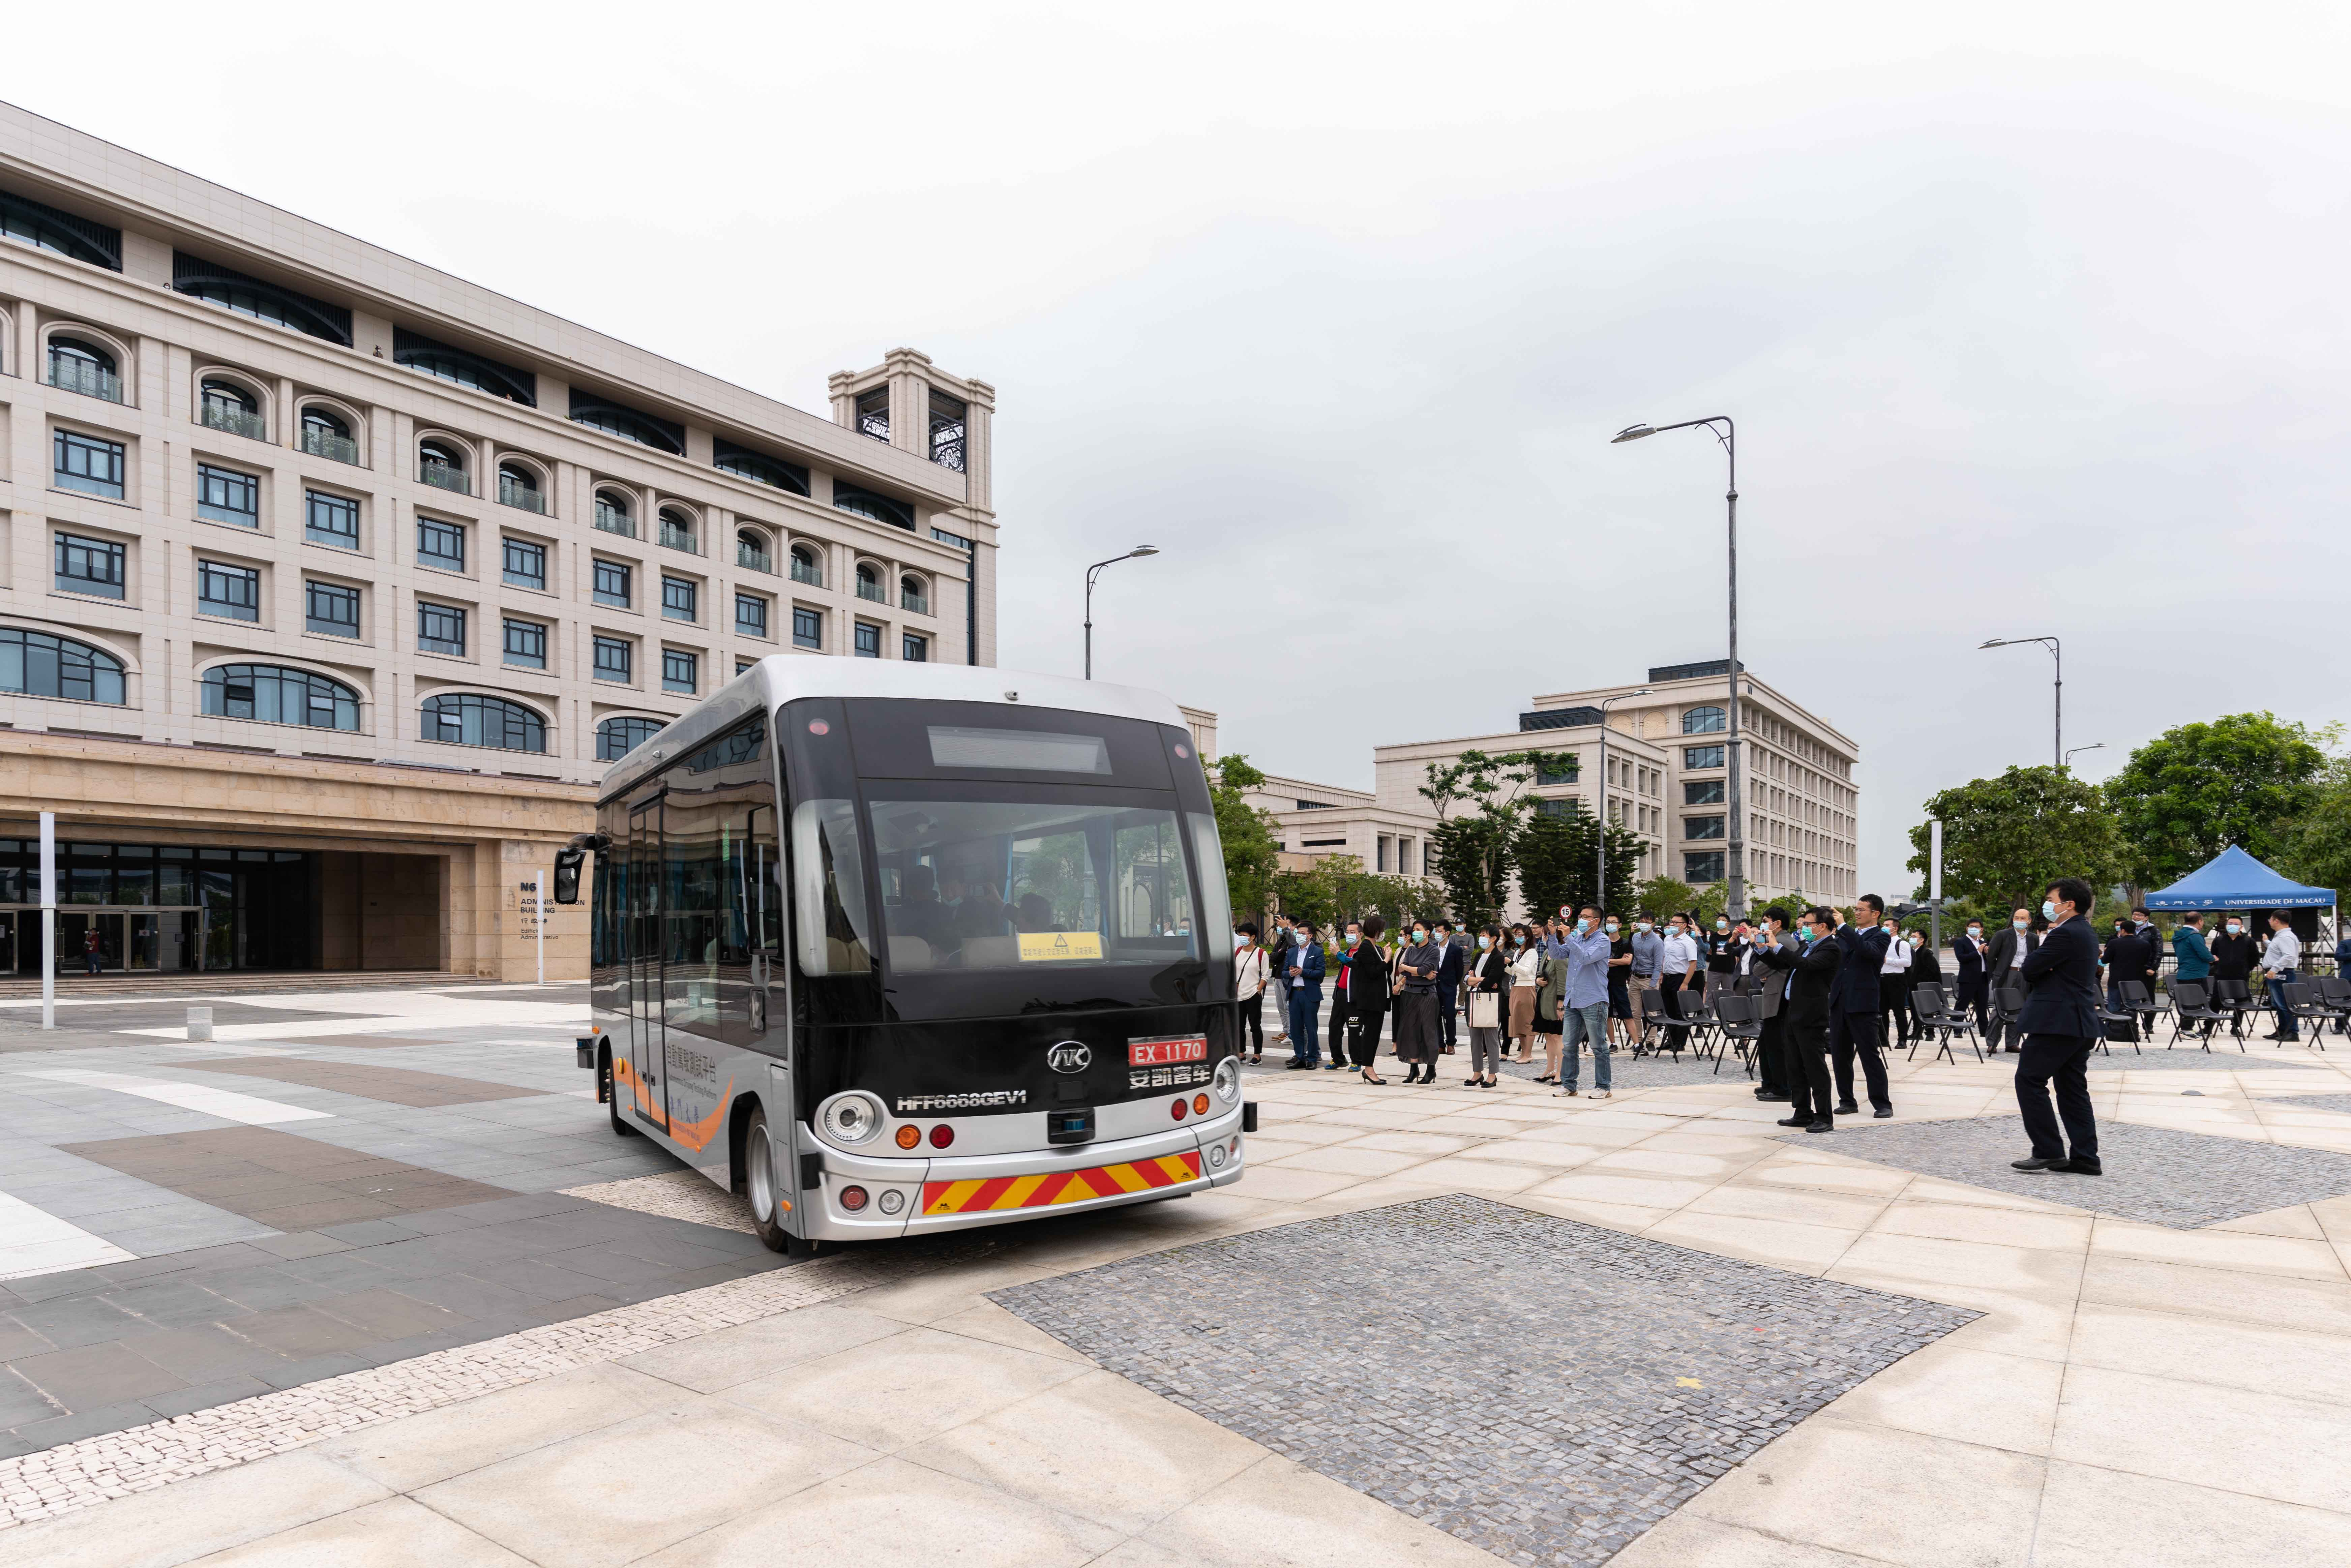 The bus runs on the UM campus on a trial basis